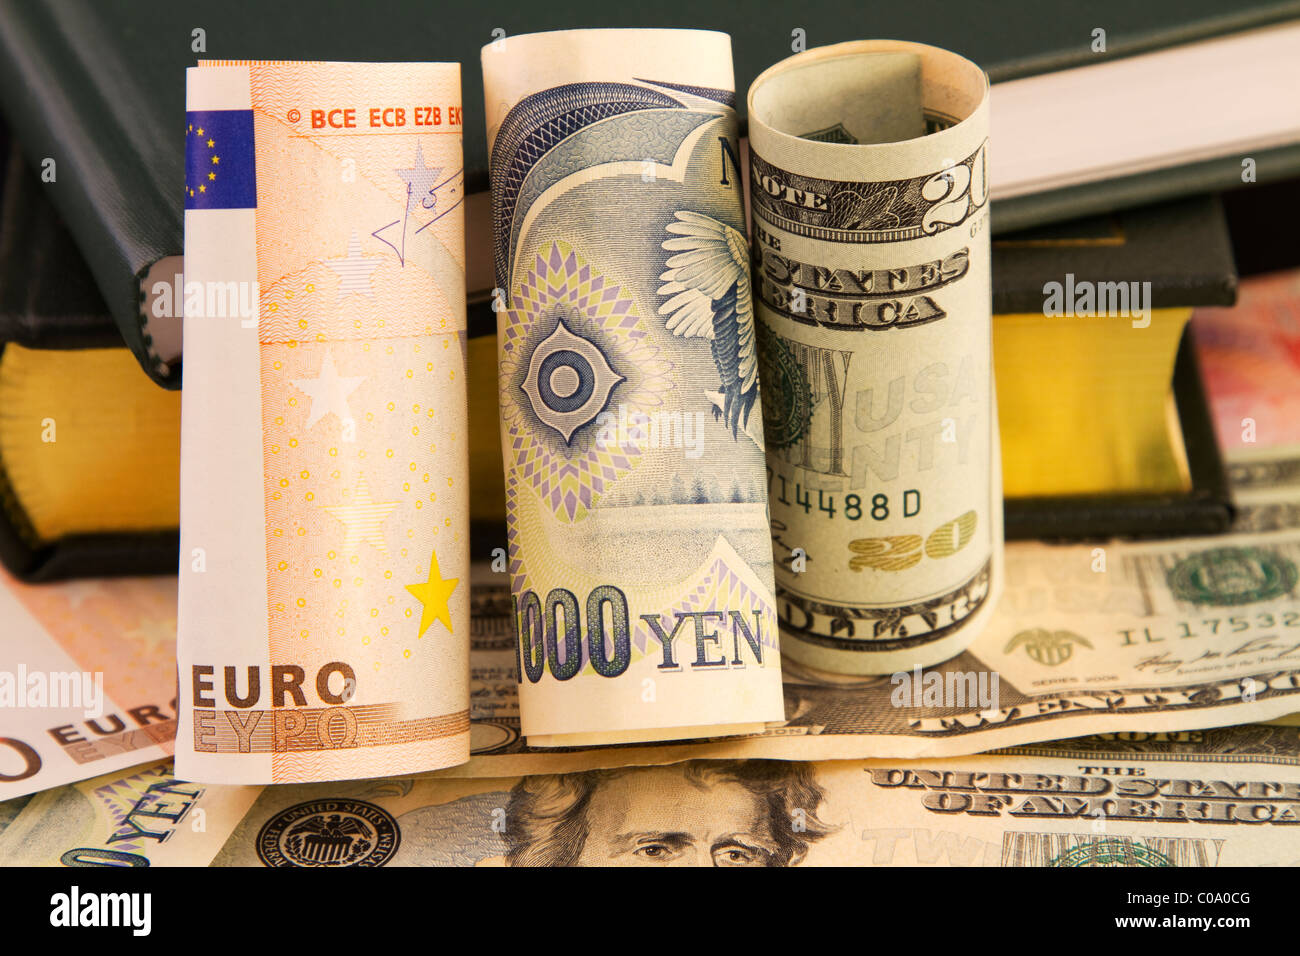 Multiple global currencies and books connect knowledge and data-driven, strategic global currency analysis to business. - Stock Image